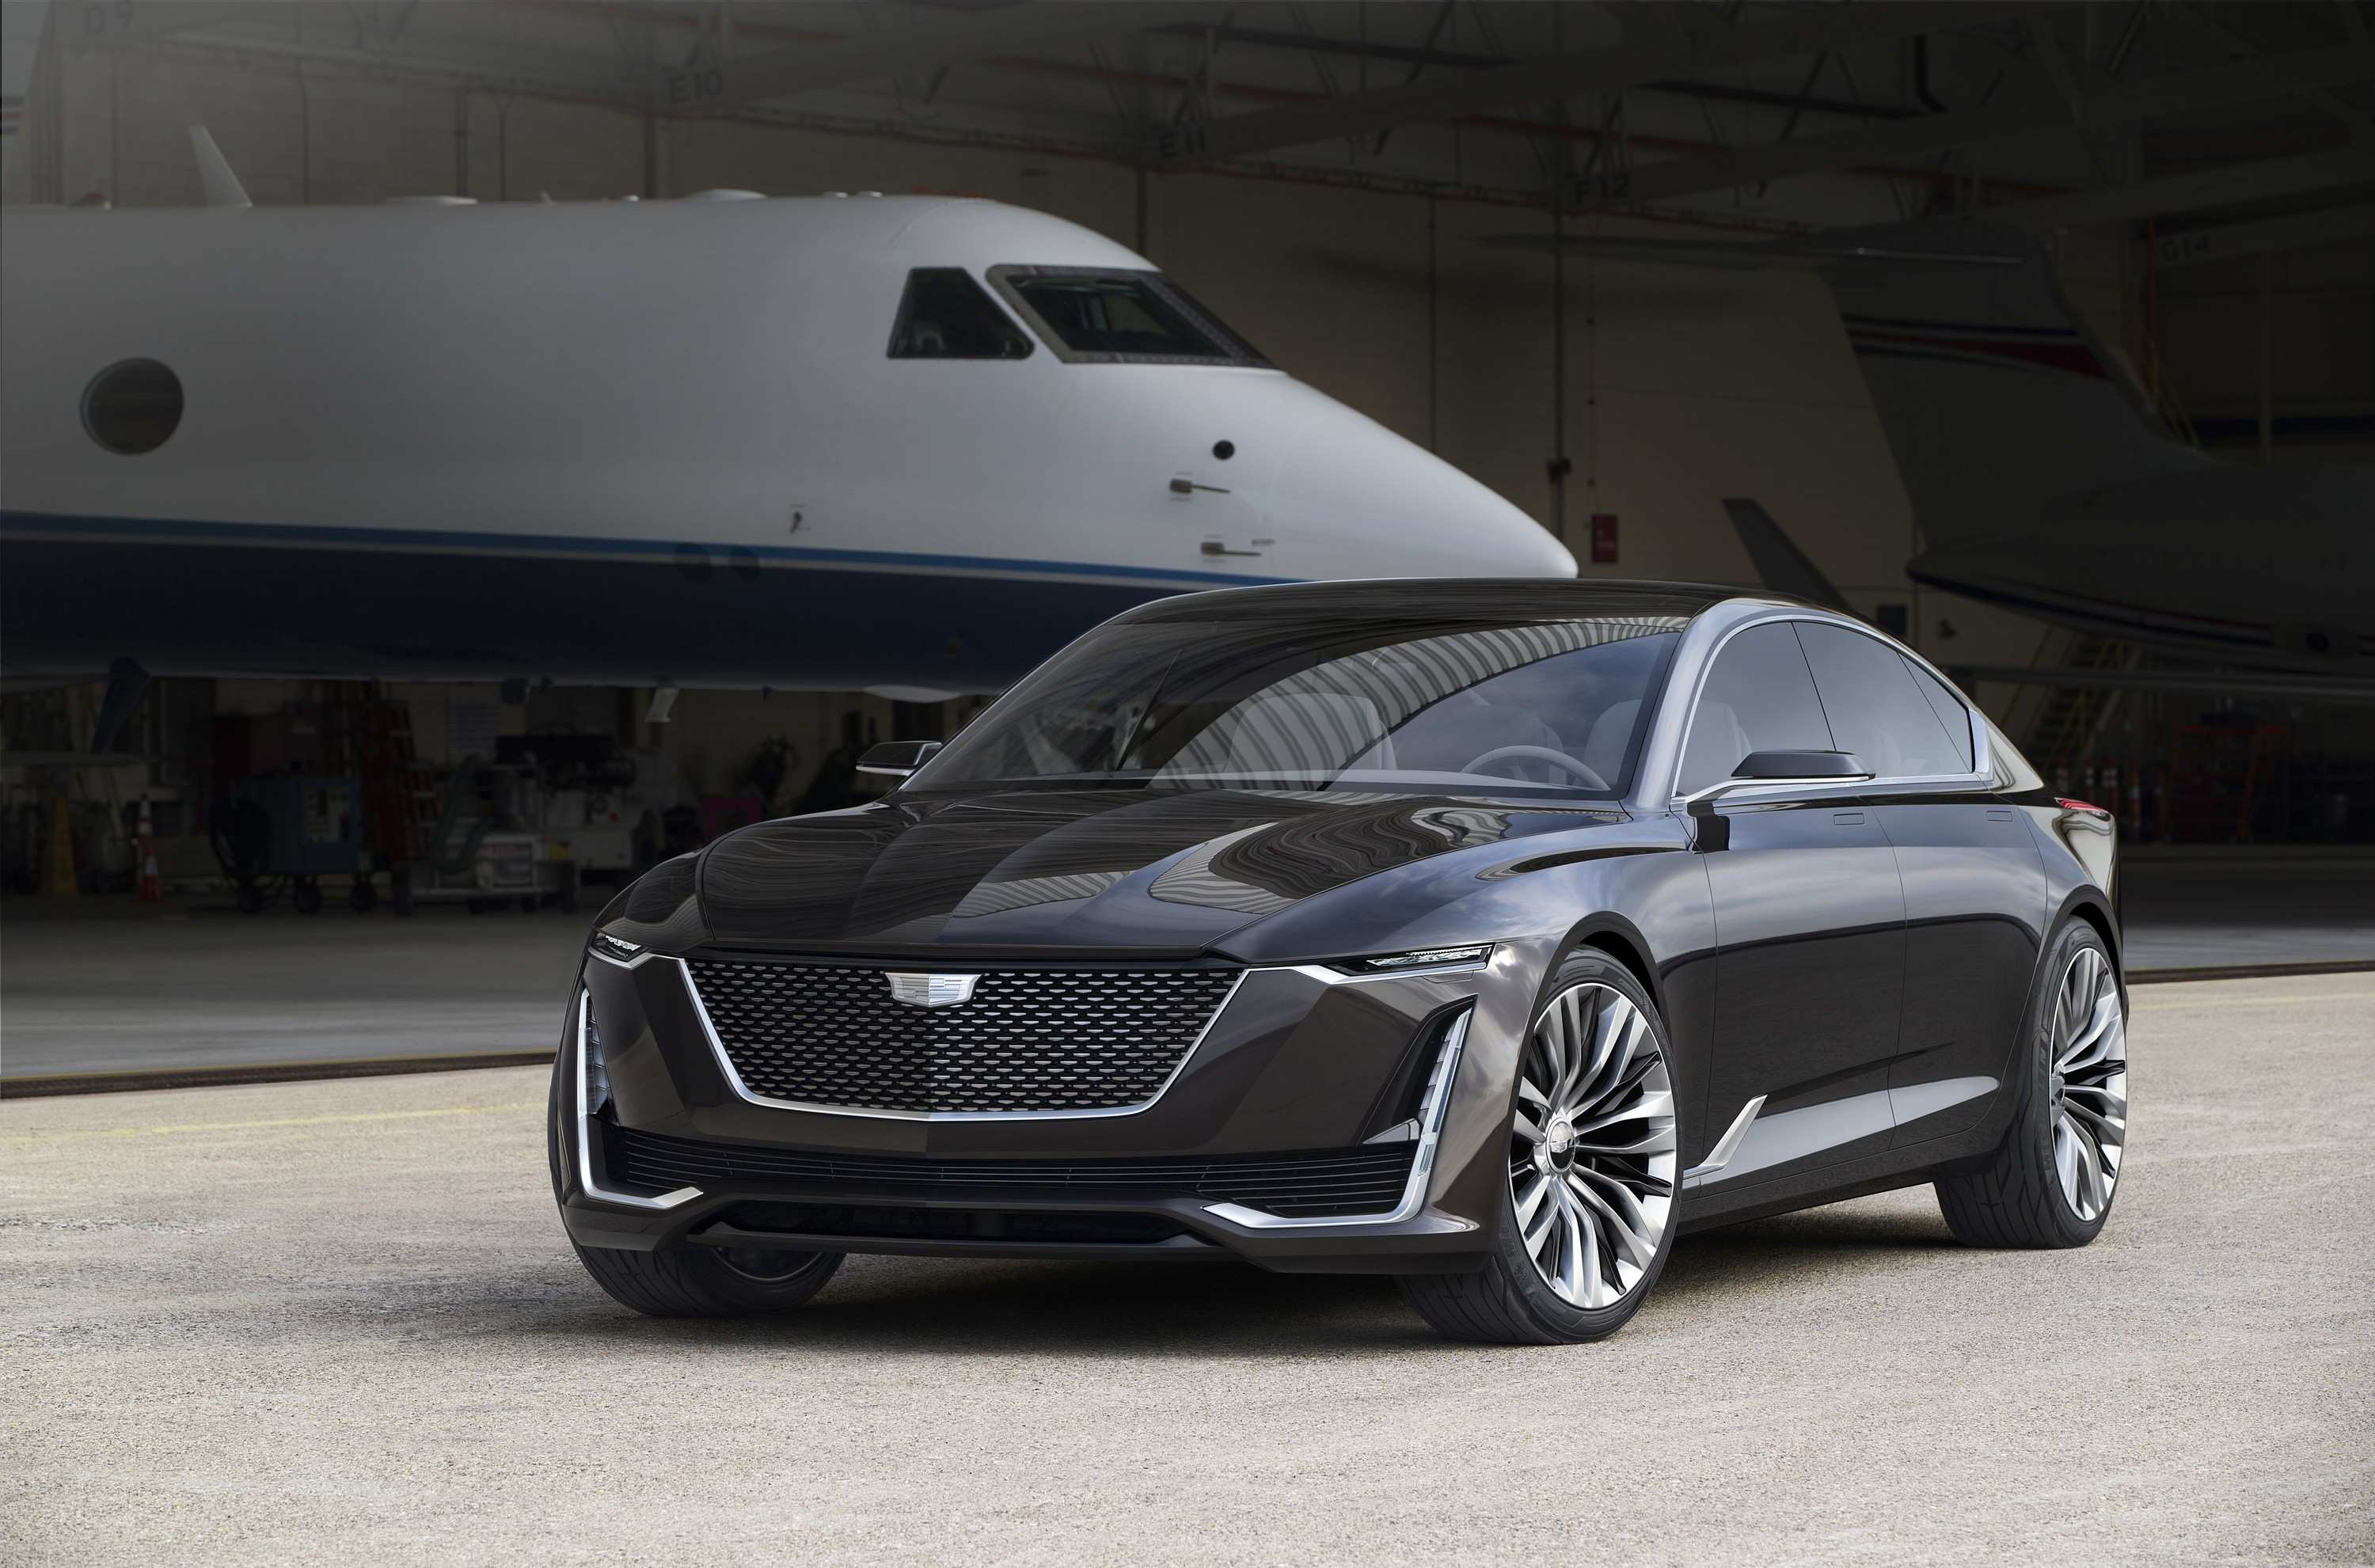 90 All New Cadillac Cars 2020 Style